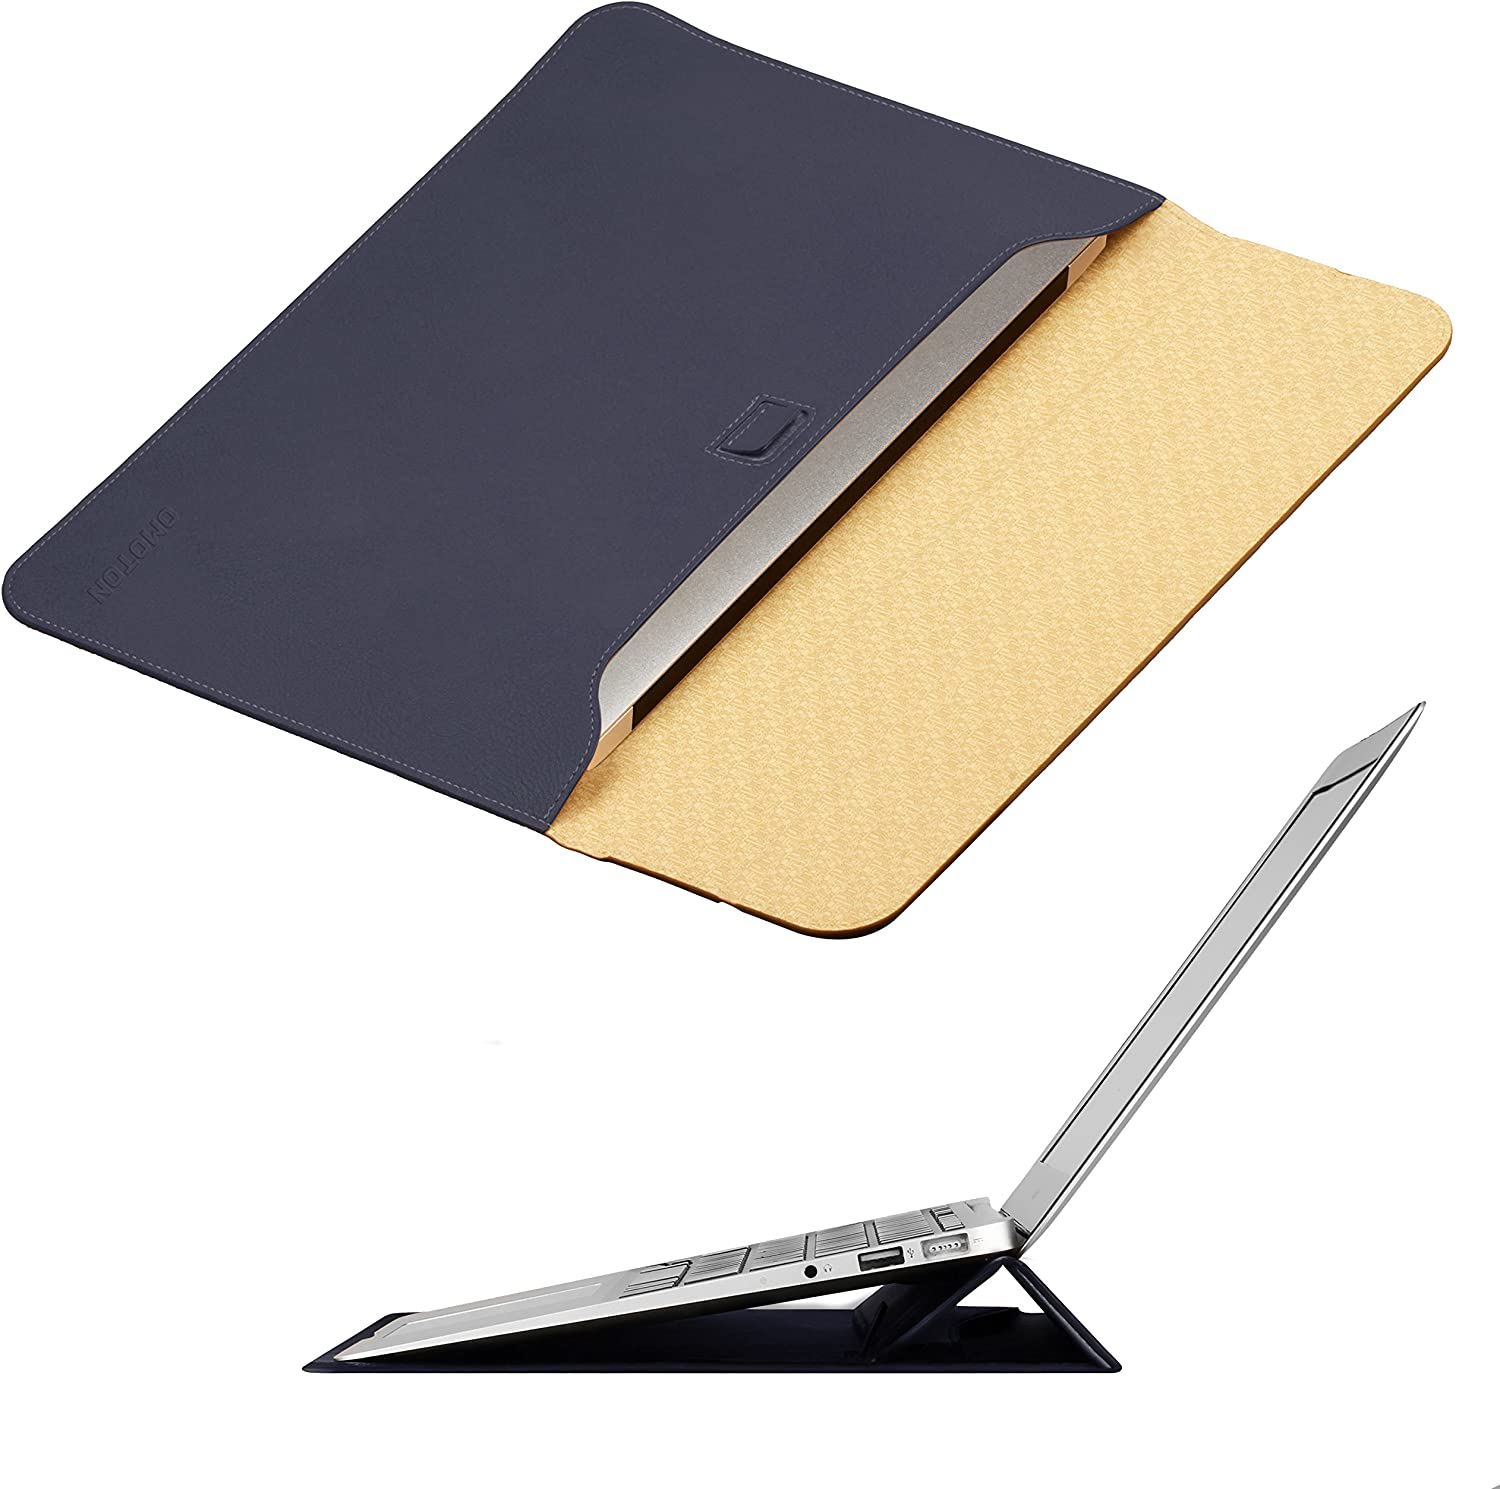 MacBook Air 13 inch Laptop Case Sleeve with Stand, OMOTON Wallet Sleeve Case for MacBook Air 13 inch (2017 Version Only), Ultrathin Carrying Bag with Stand, Navy Blue